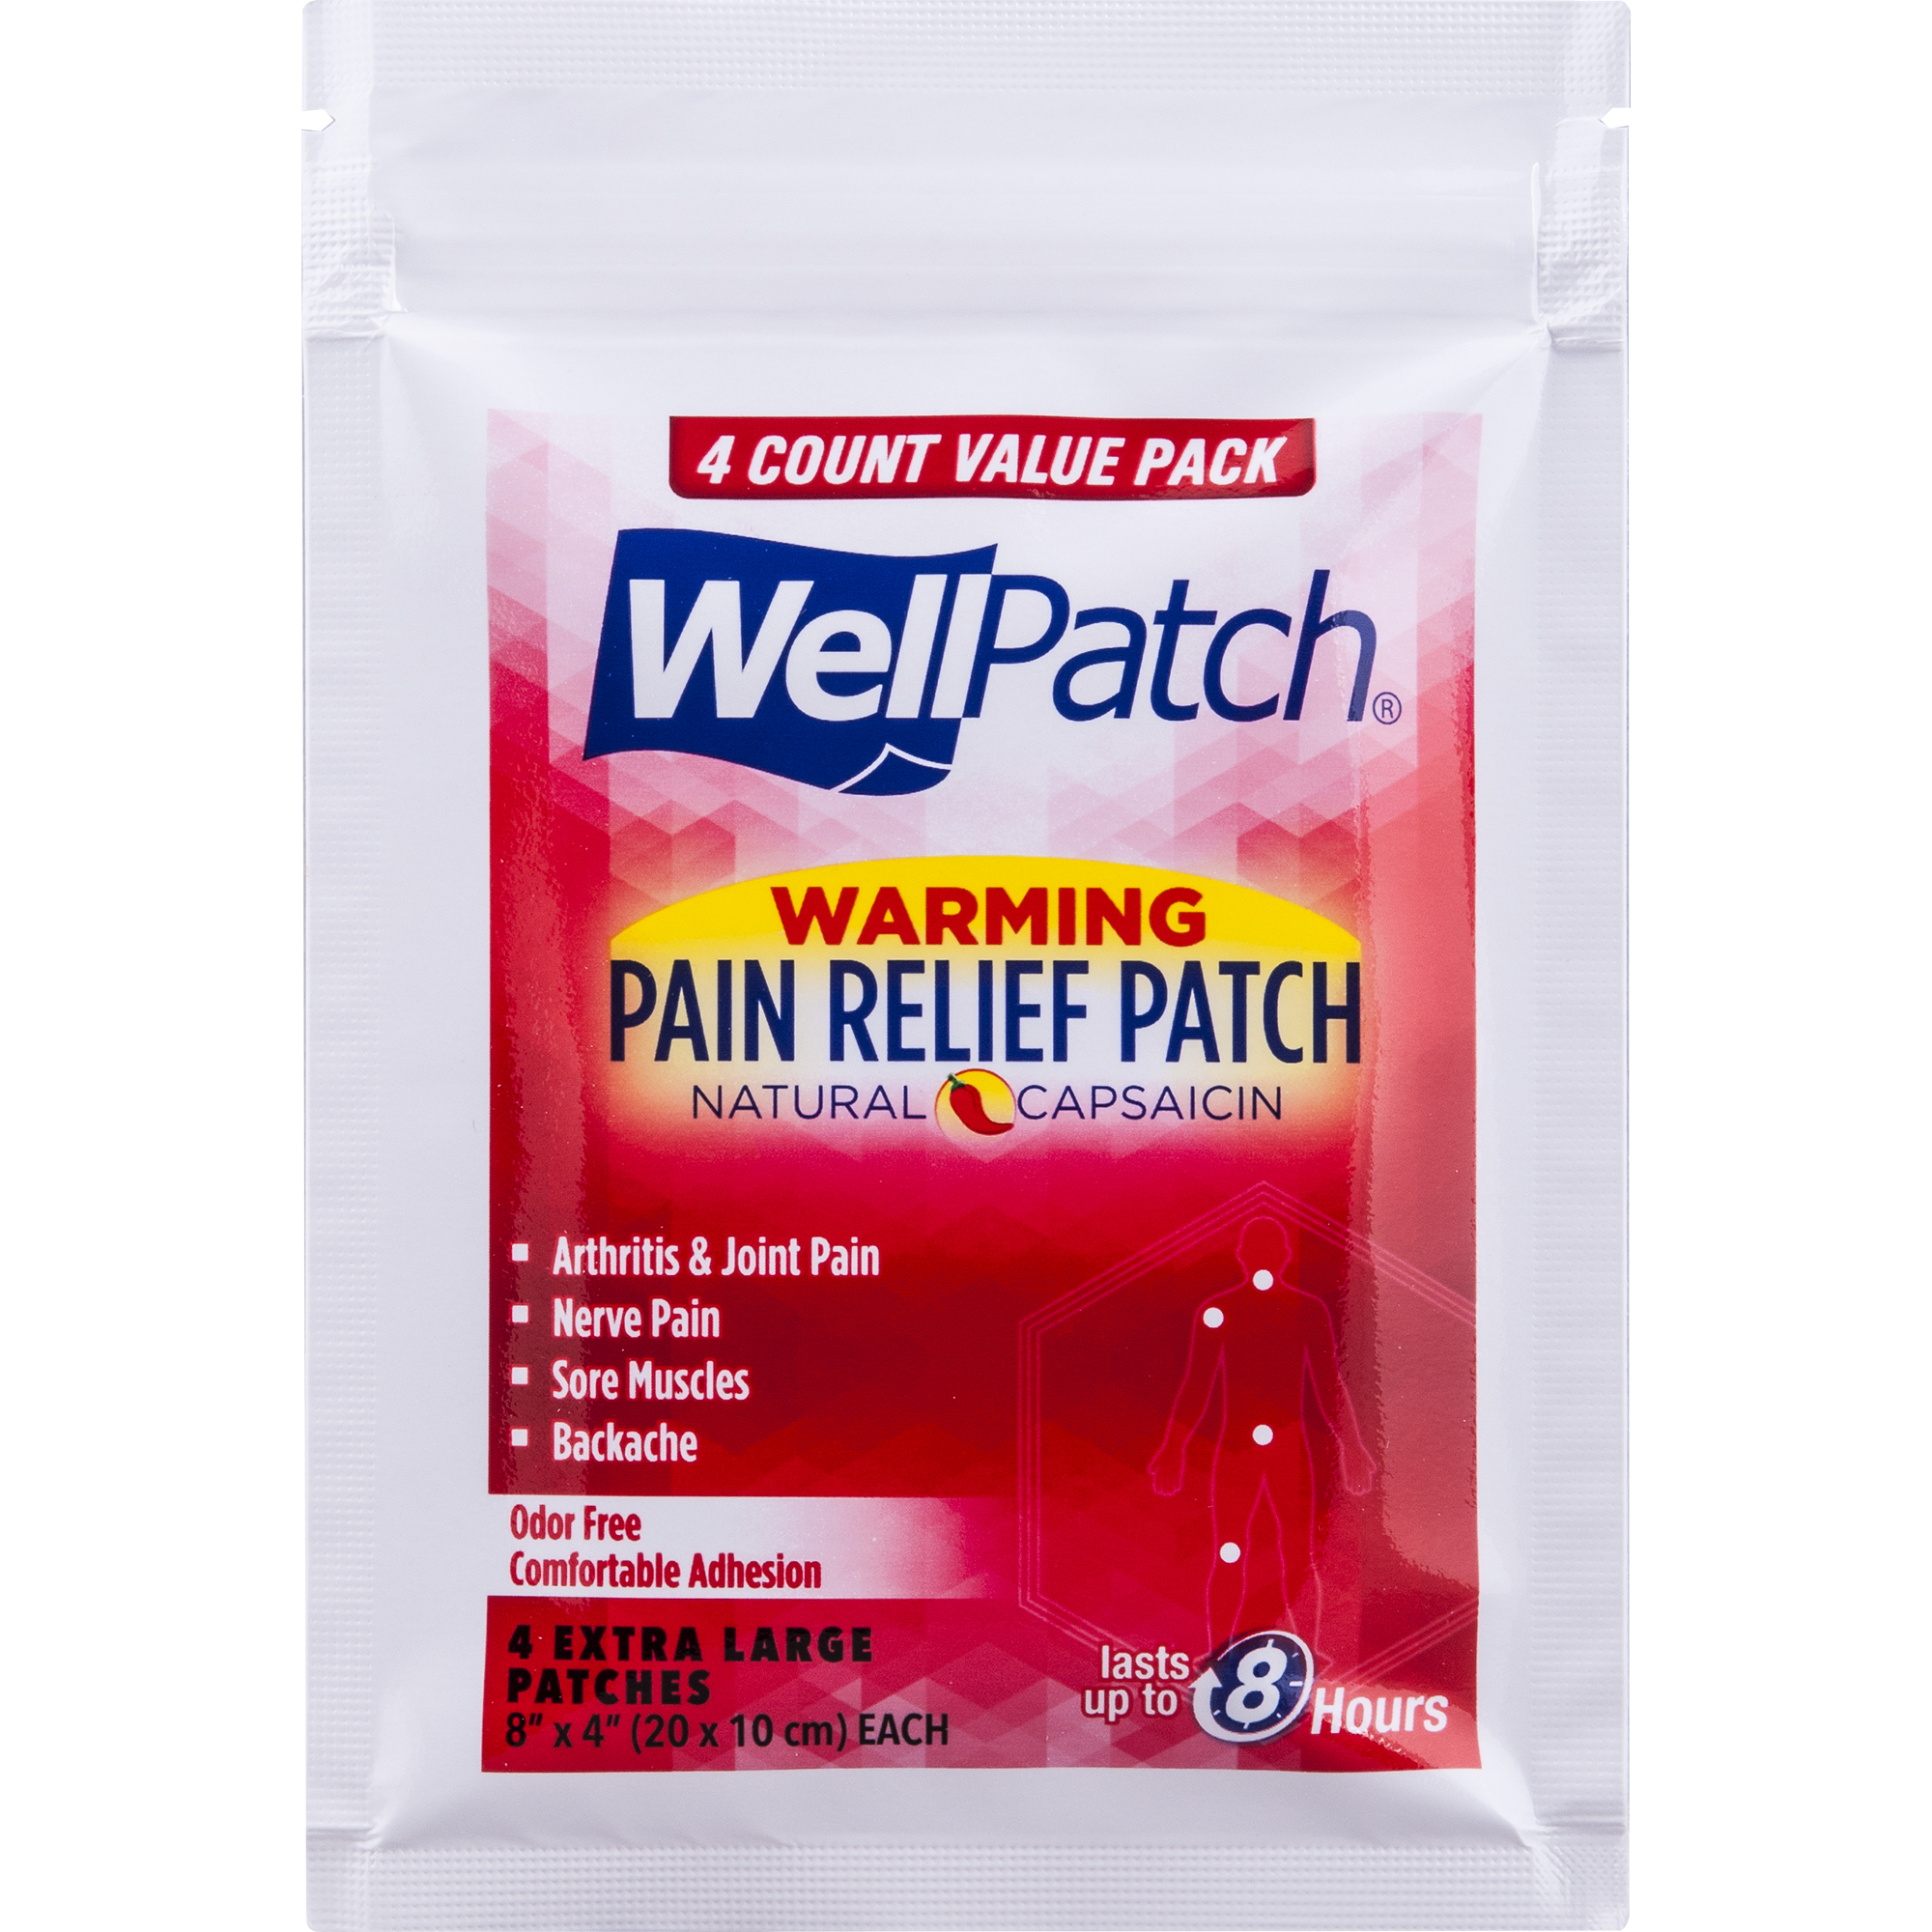 Mentholatum WellPatch Capsaicin Pain Relief Patches, 4 ct